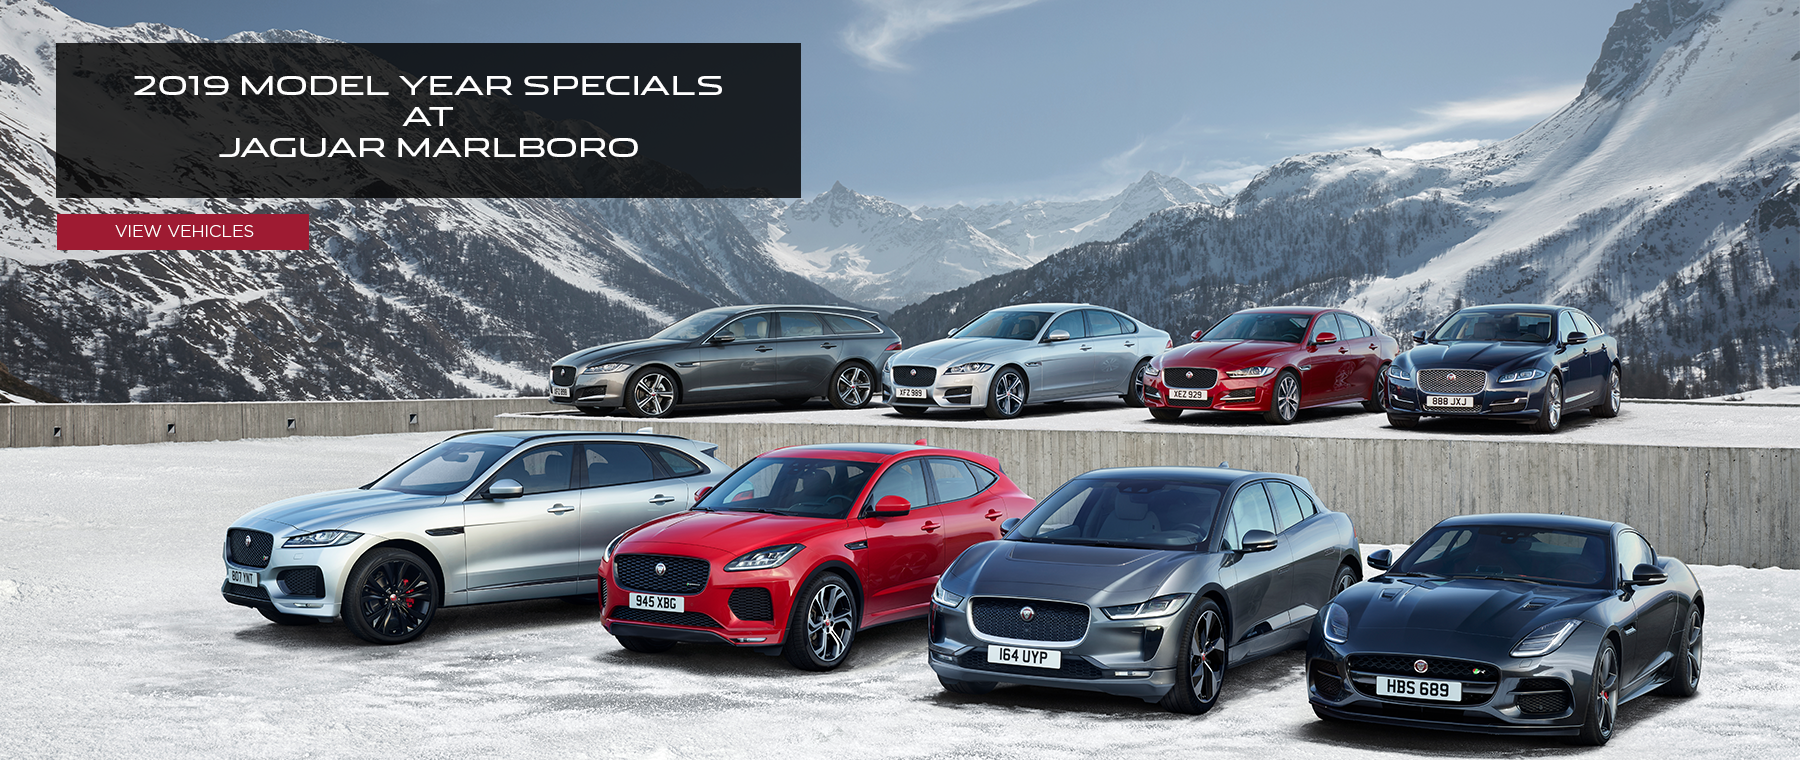 2019 Model Year Specials at Jaguar Marlboro. Click to view vehicles. Model line up on snowy lot with mountains in the background.